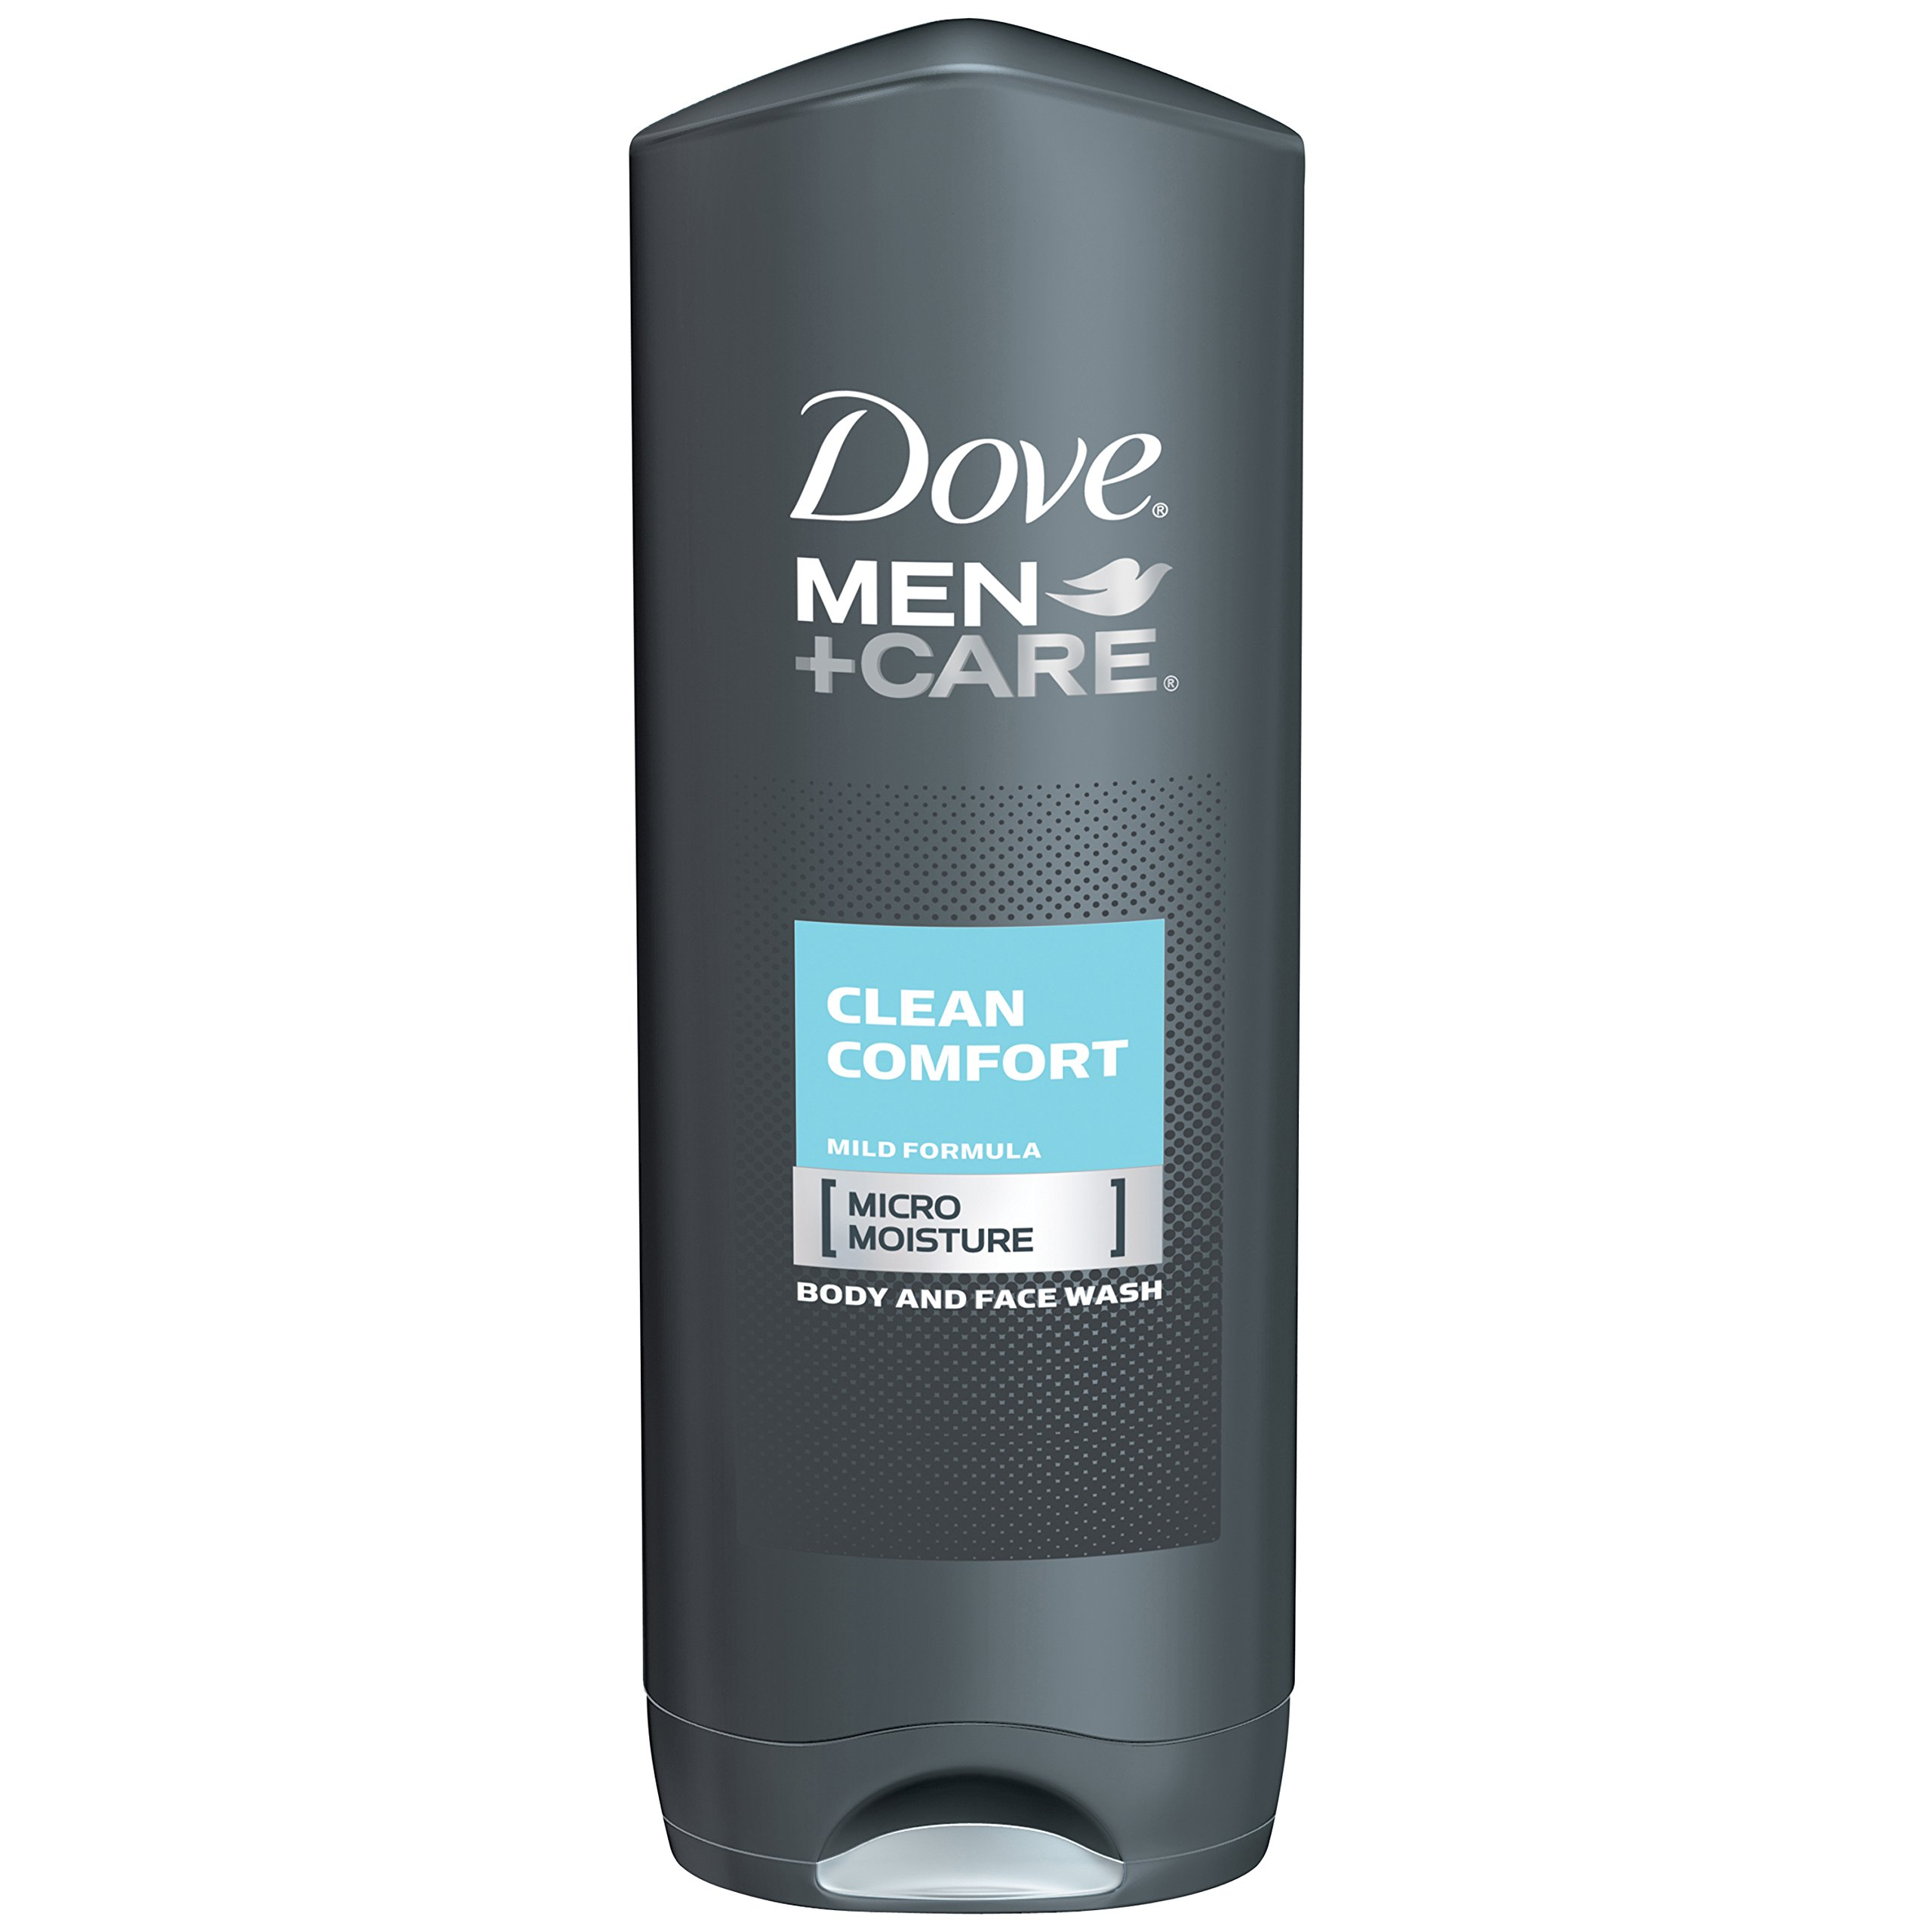 Dove Men+Care Body and Face Wash, Clean Comfort 18 oz (pack of 3)